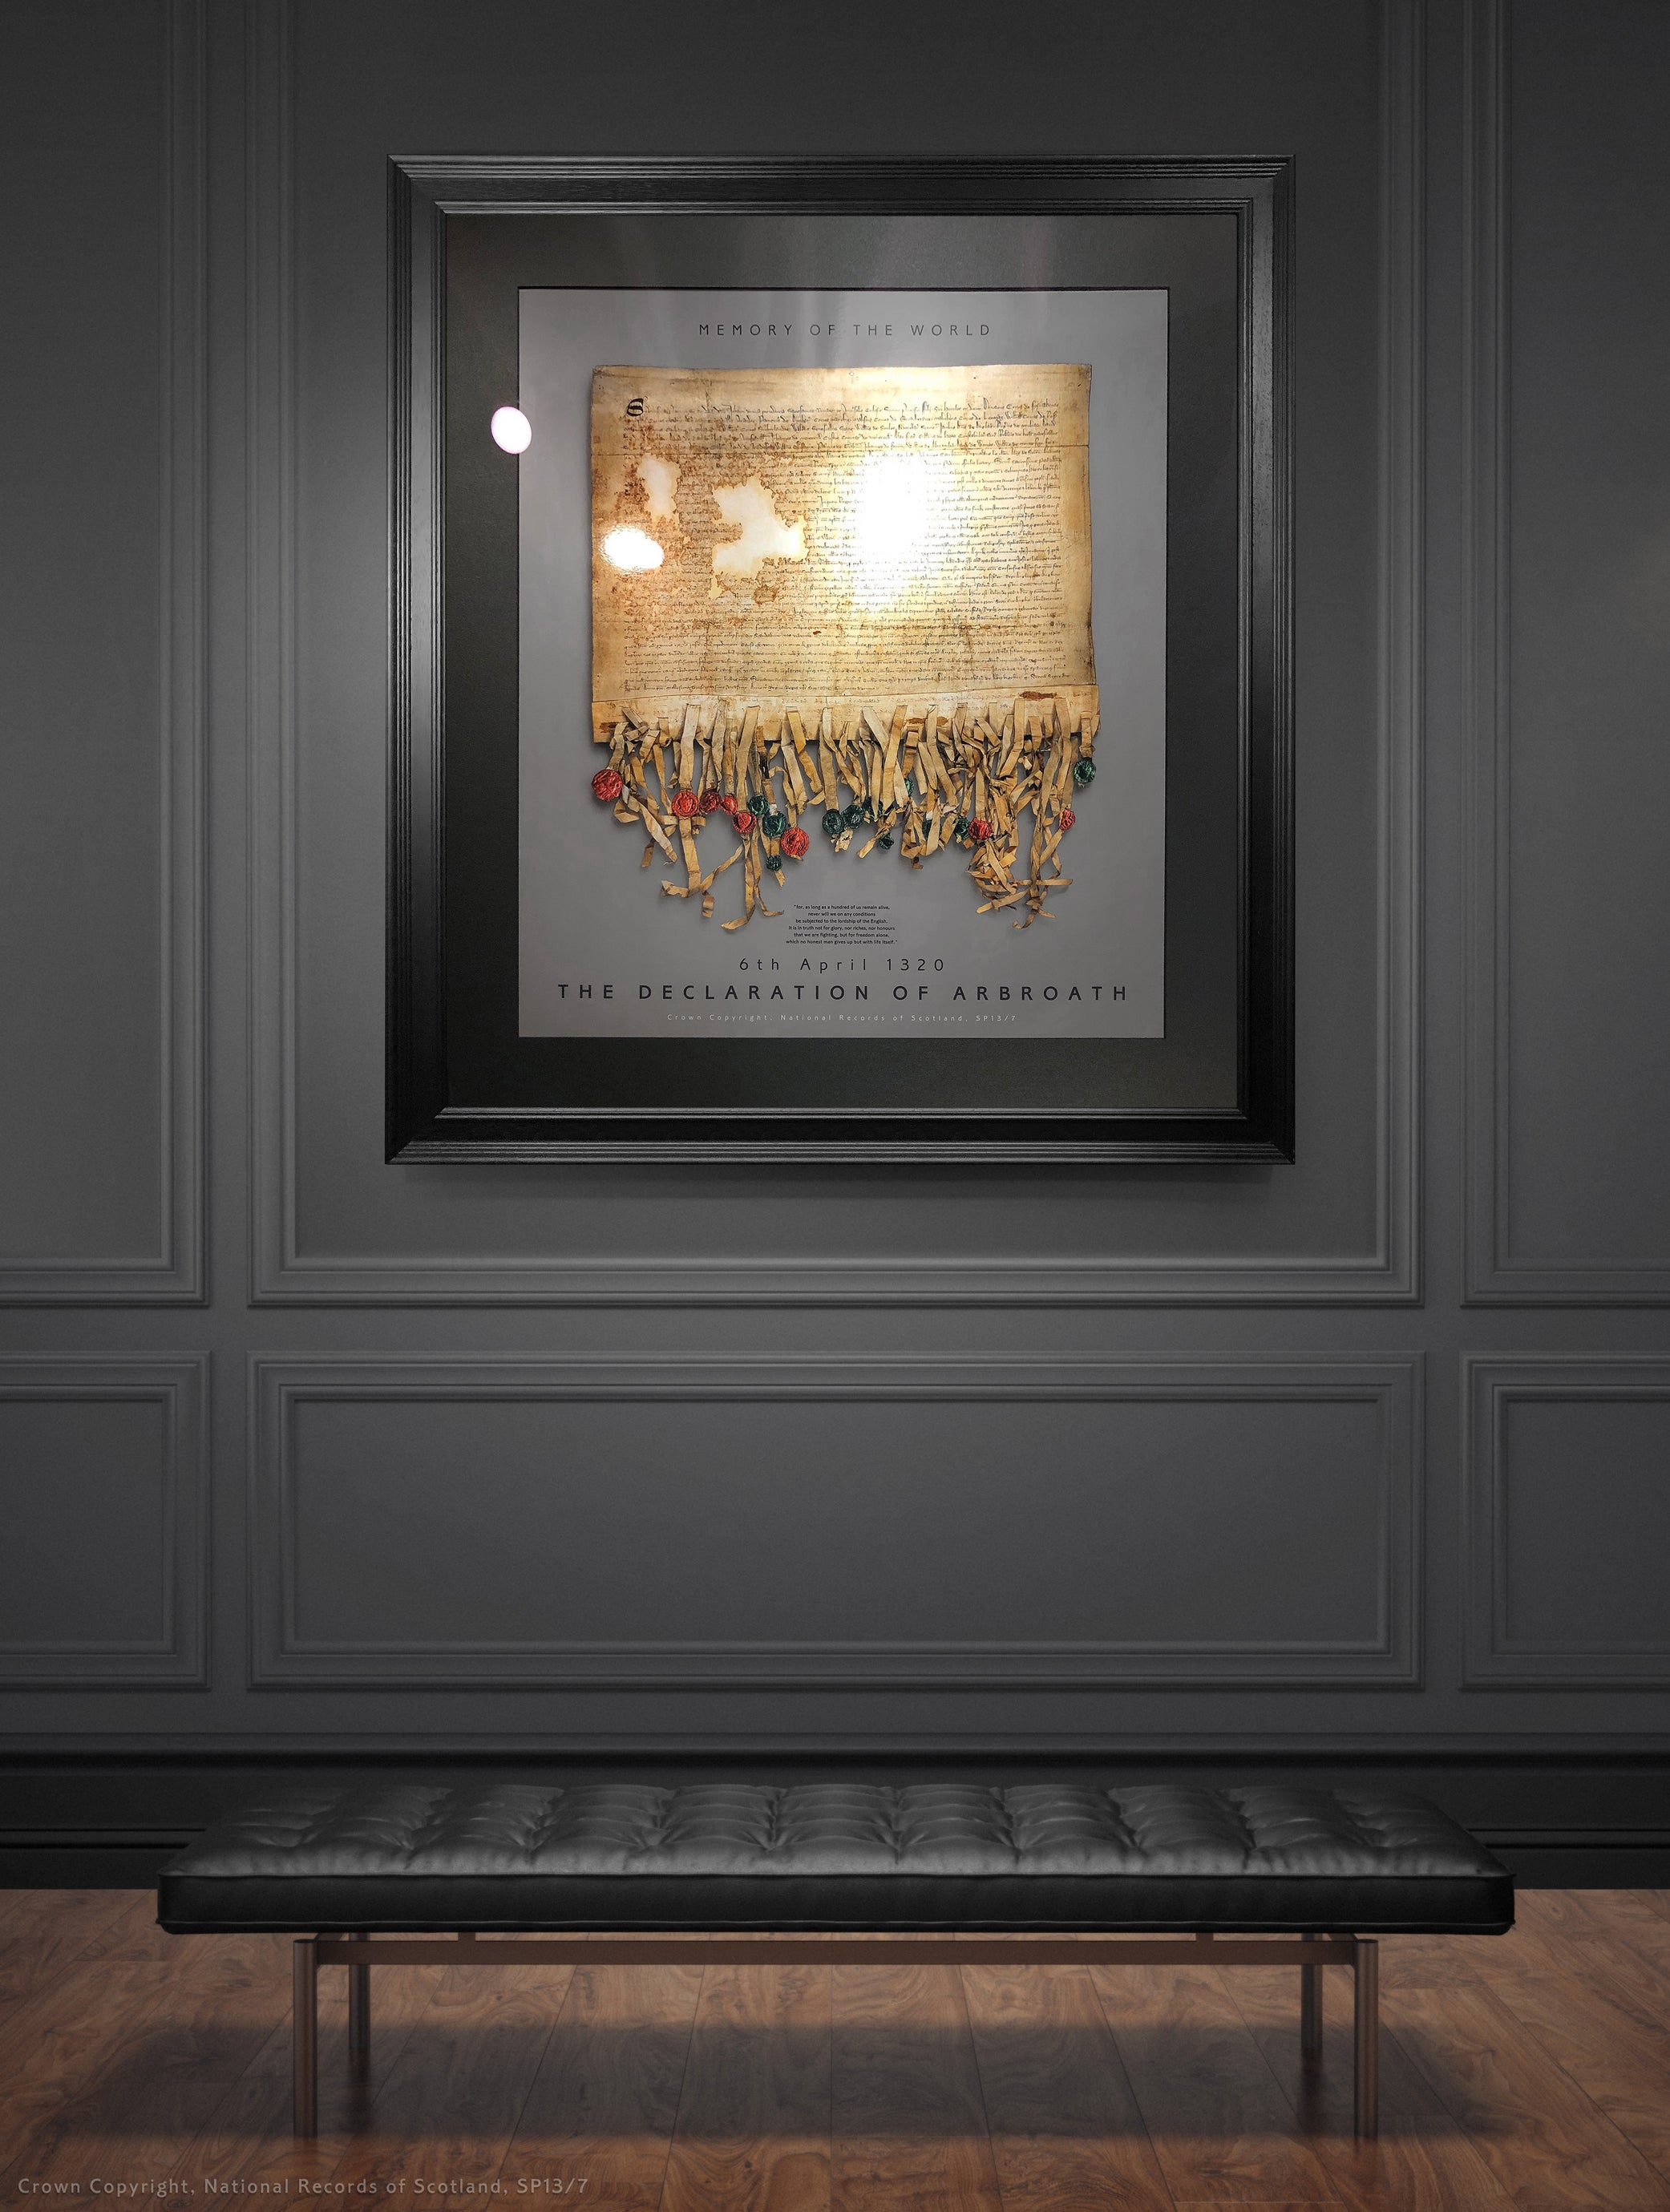 The Declaration of Arbroath Gold Metallic Print Editions - Pewter by Steven Patrick Sim